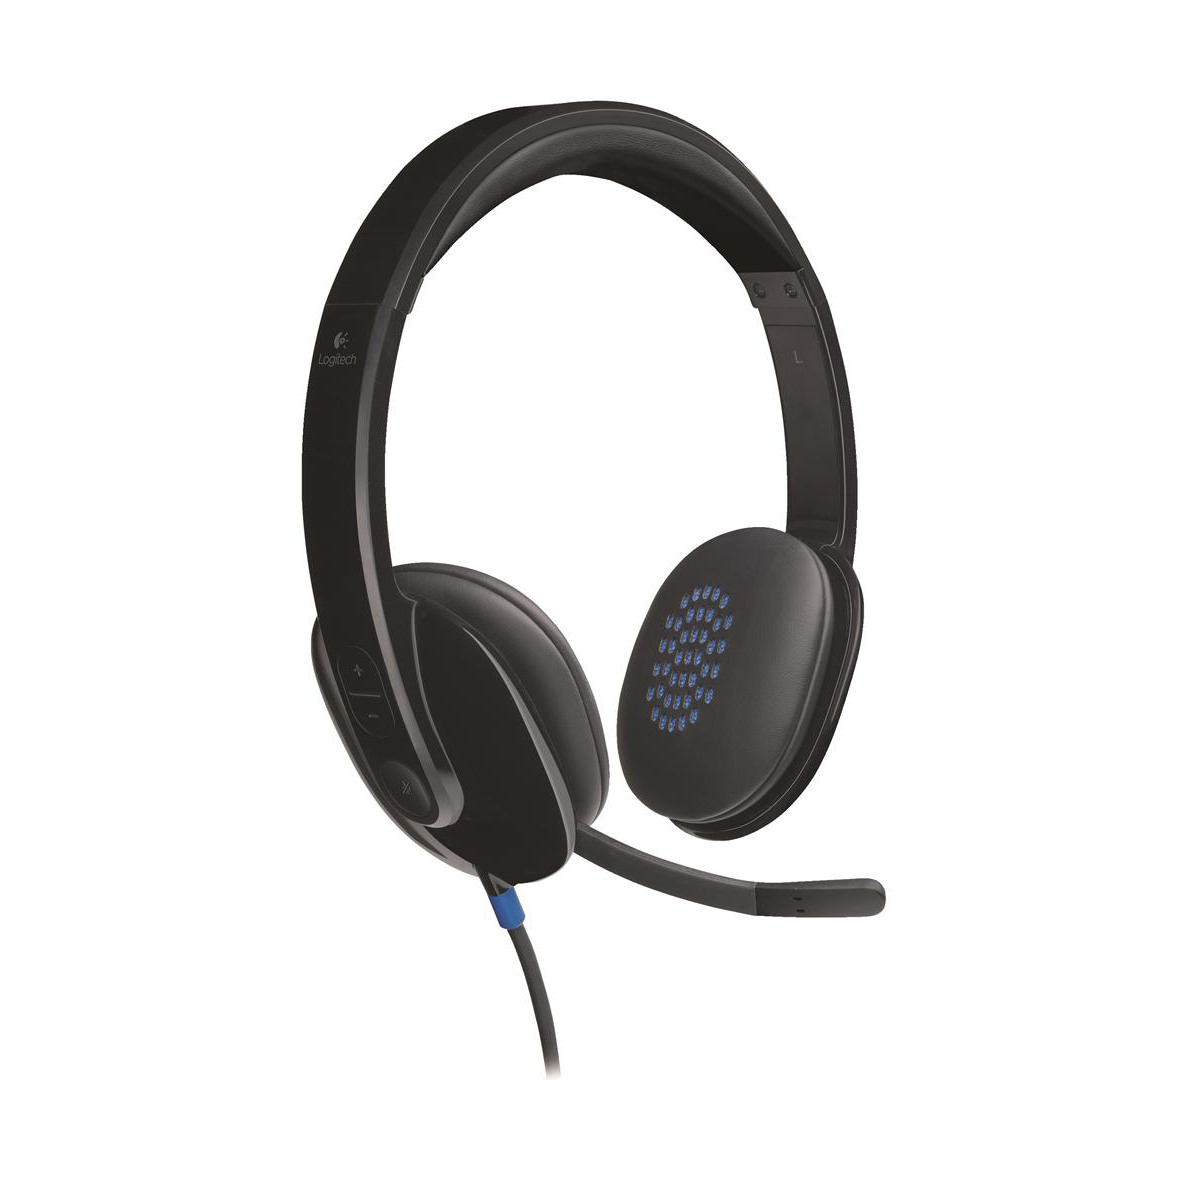 Phone headsets Logitech H540 Headset USB Laser-tuned Speakers with On-ear Controls Ref 981-000480